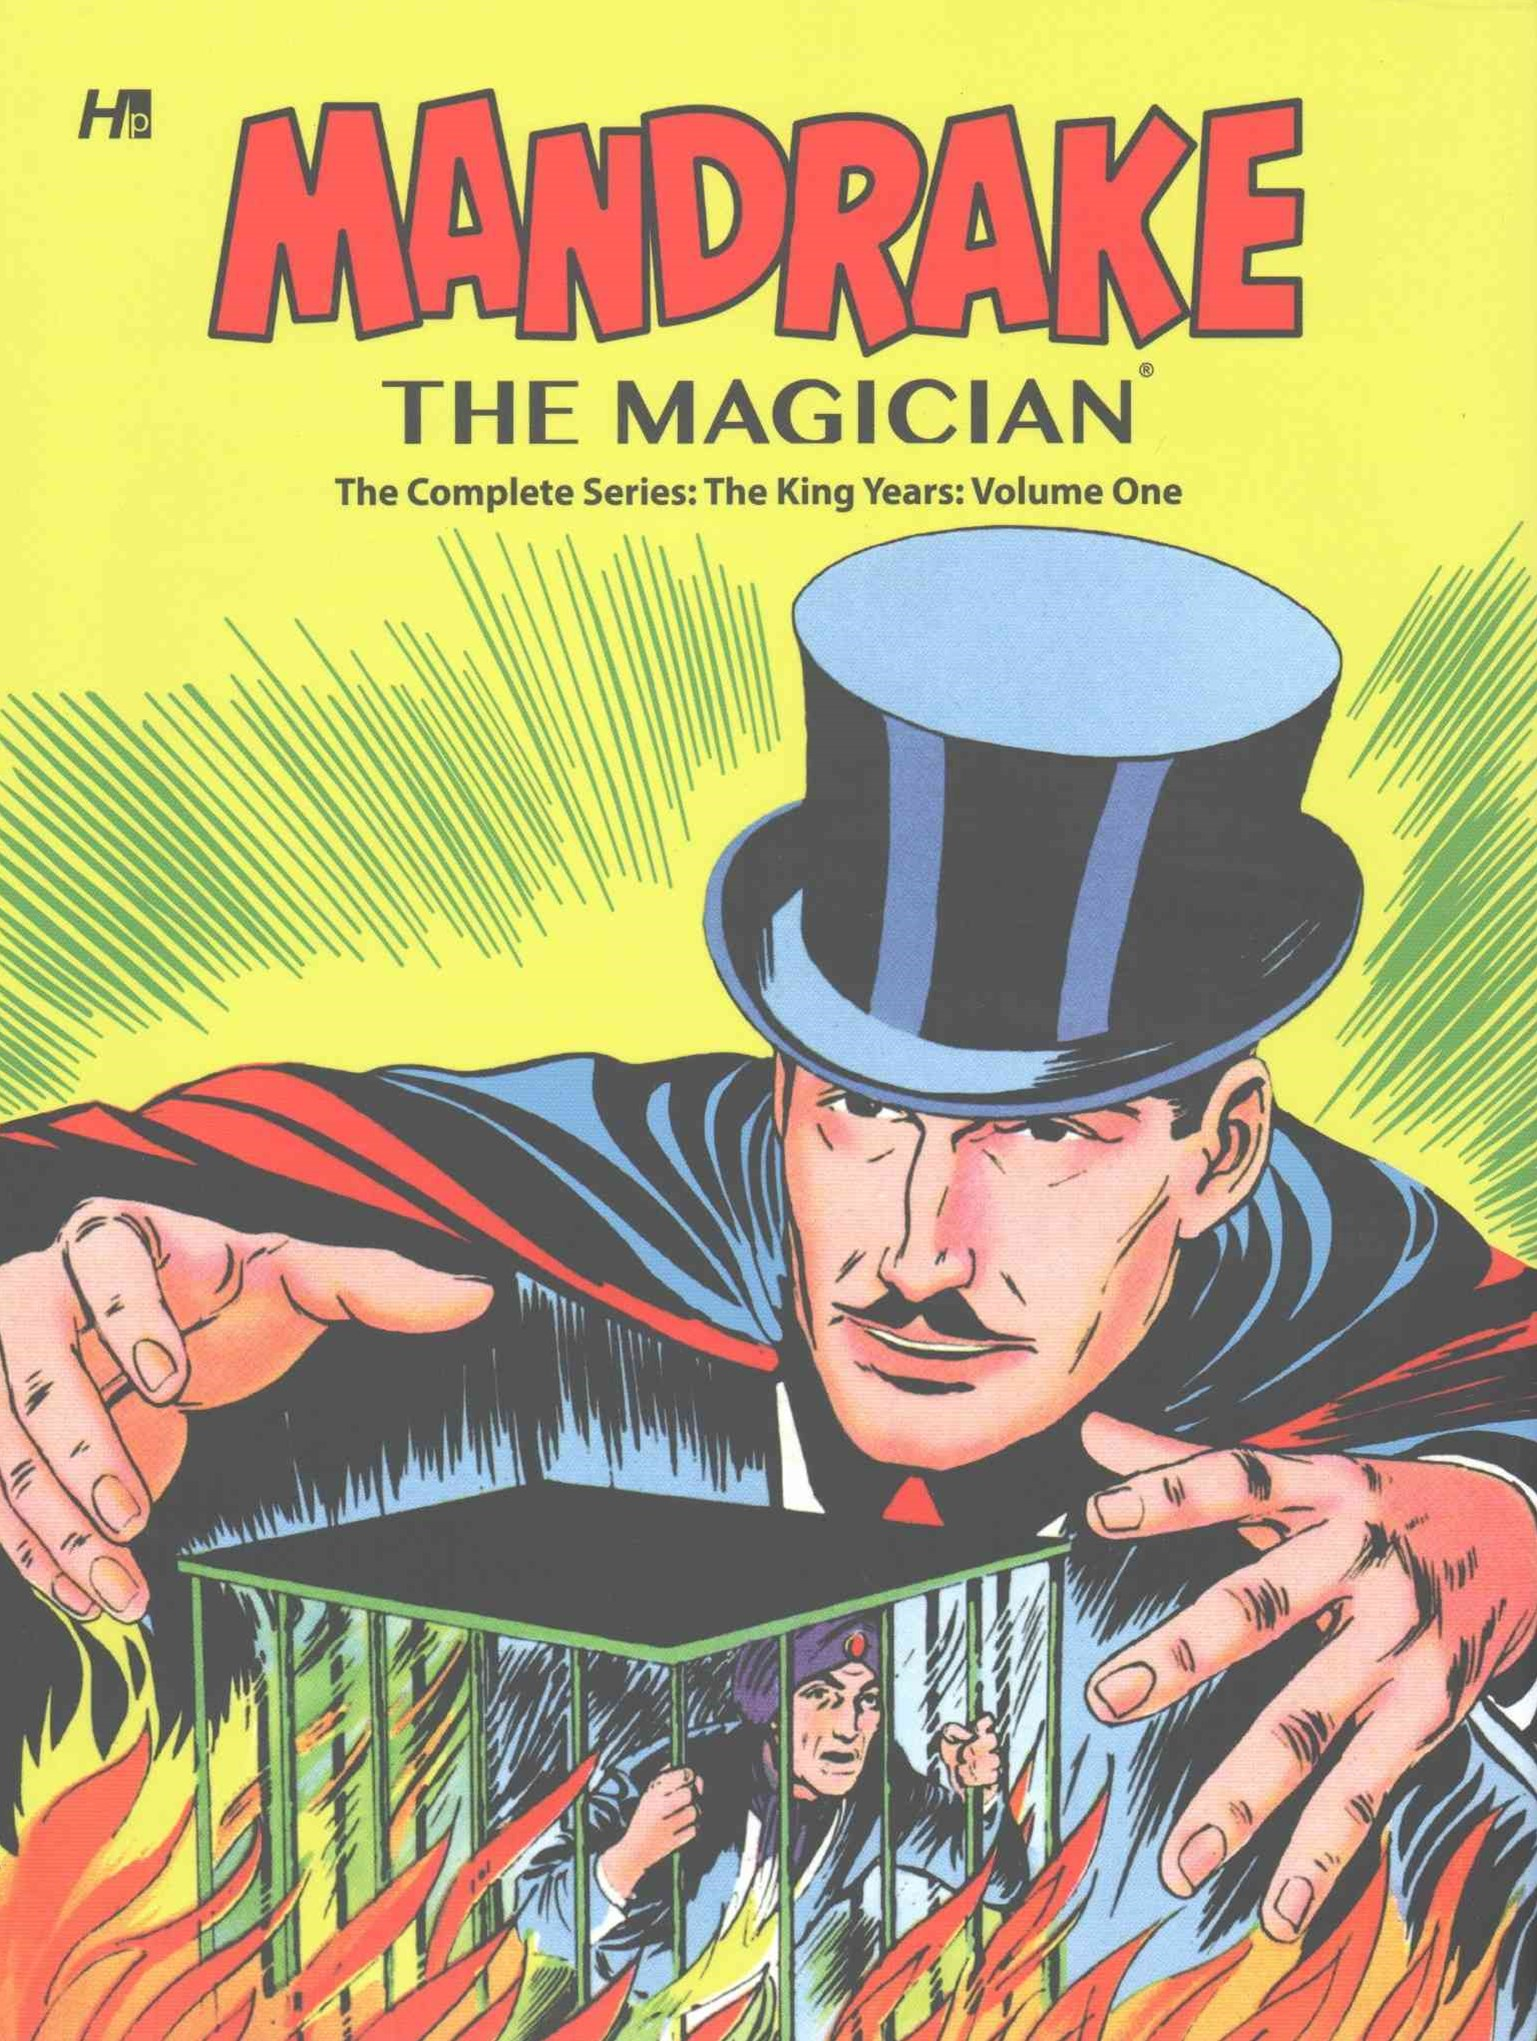 Mandrake the Magician the Complete King Years: Volume One